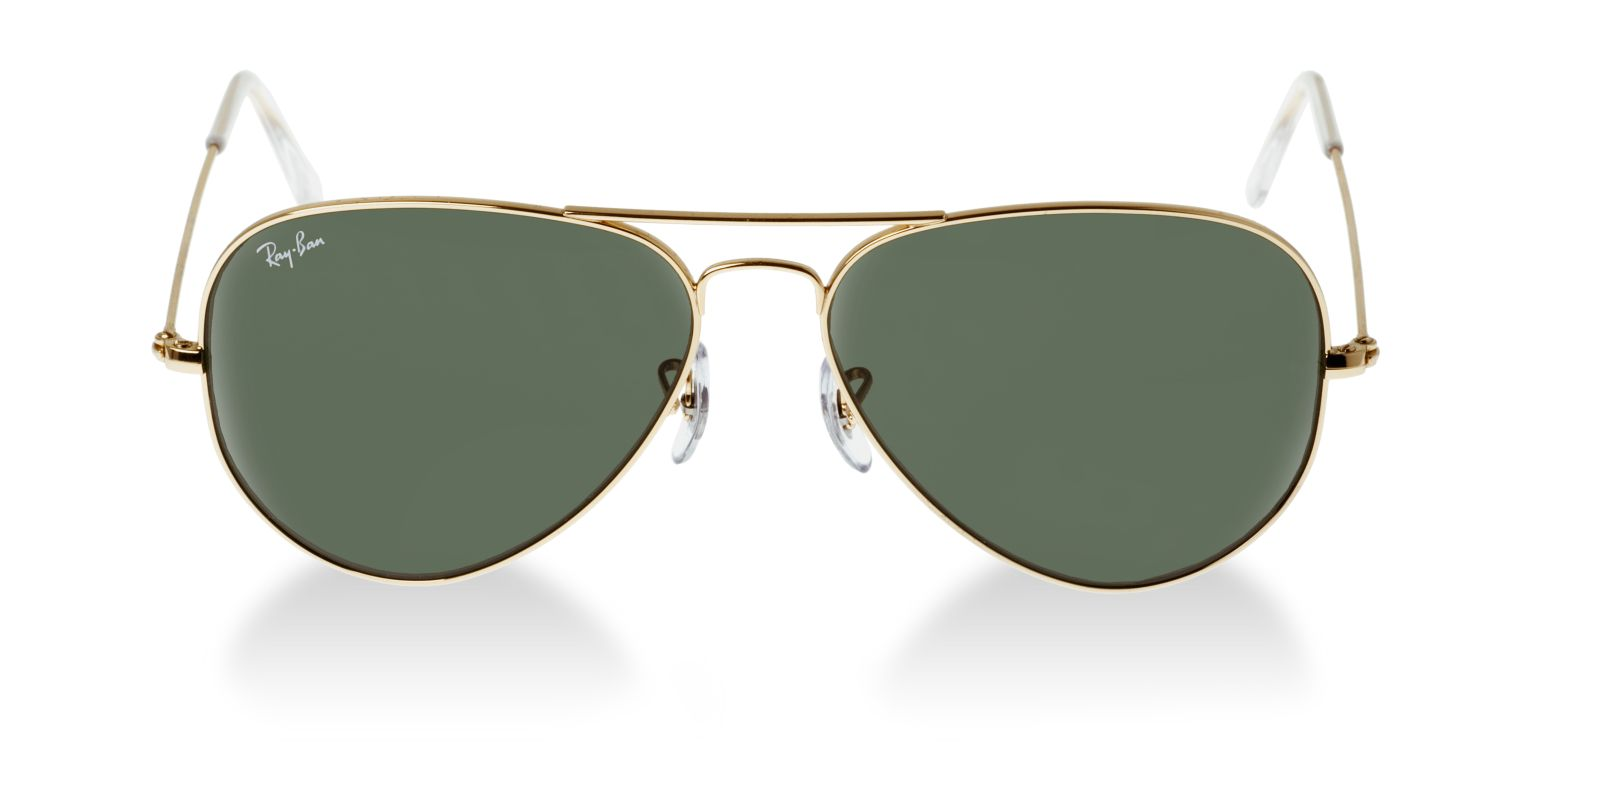 79d39e51b60 Previous  Next. Previous  Next. RAY-BAN RB3025 GOLD CLASSIC AVIATOR  SUNGLASSES